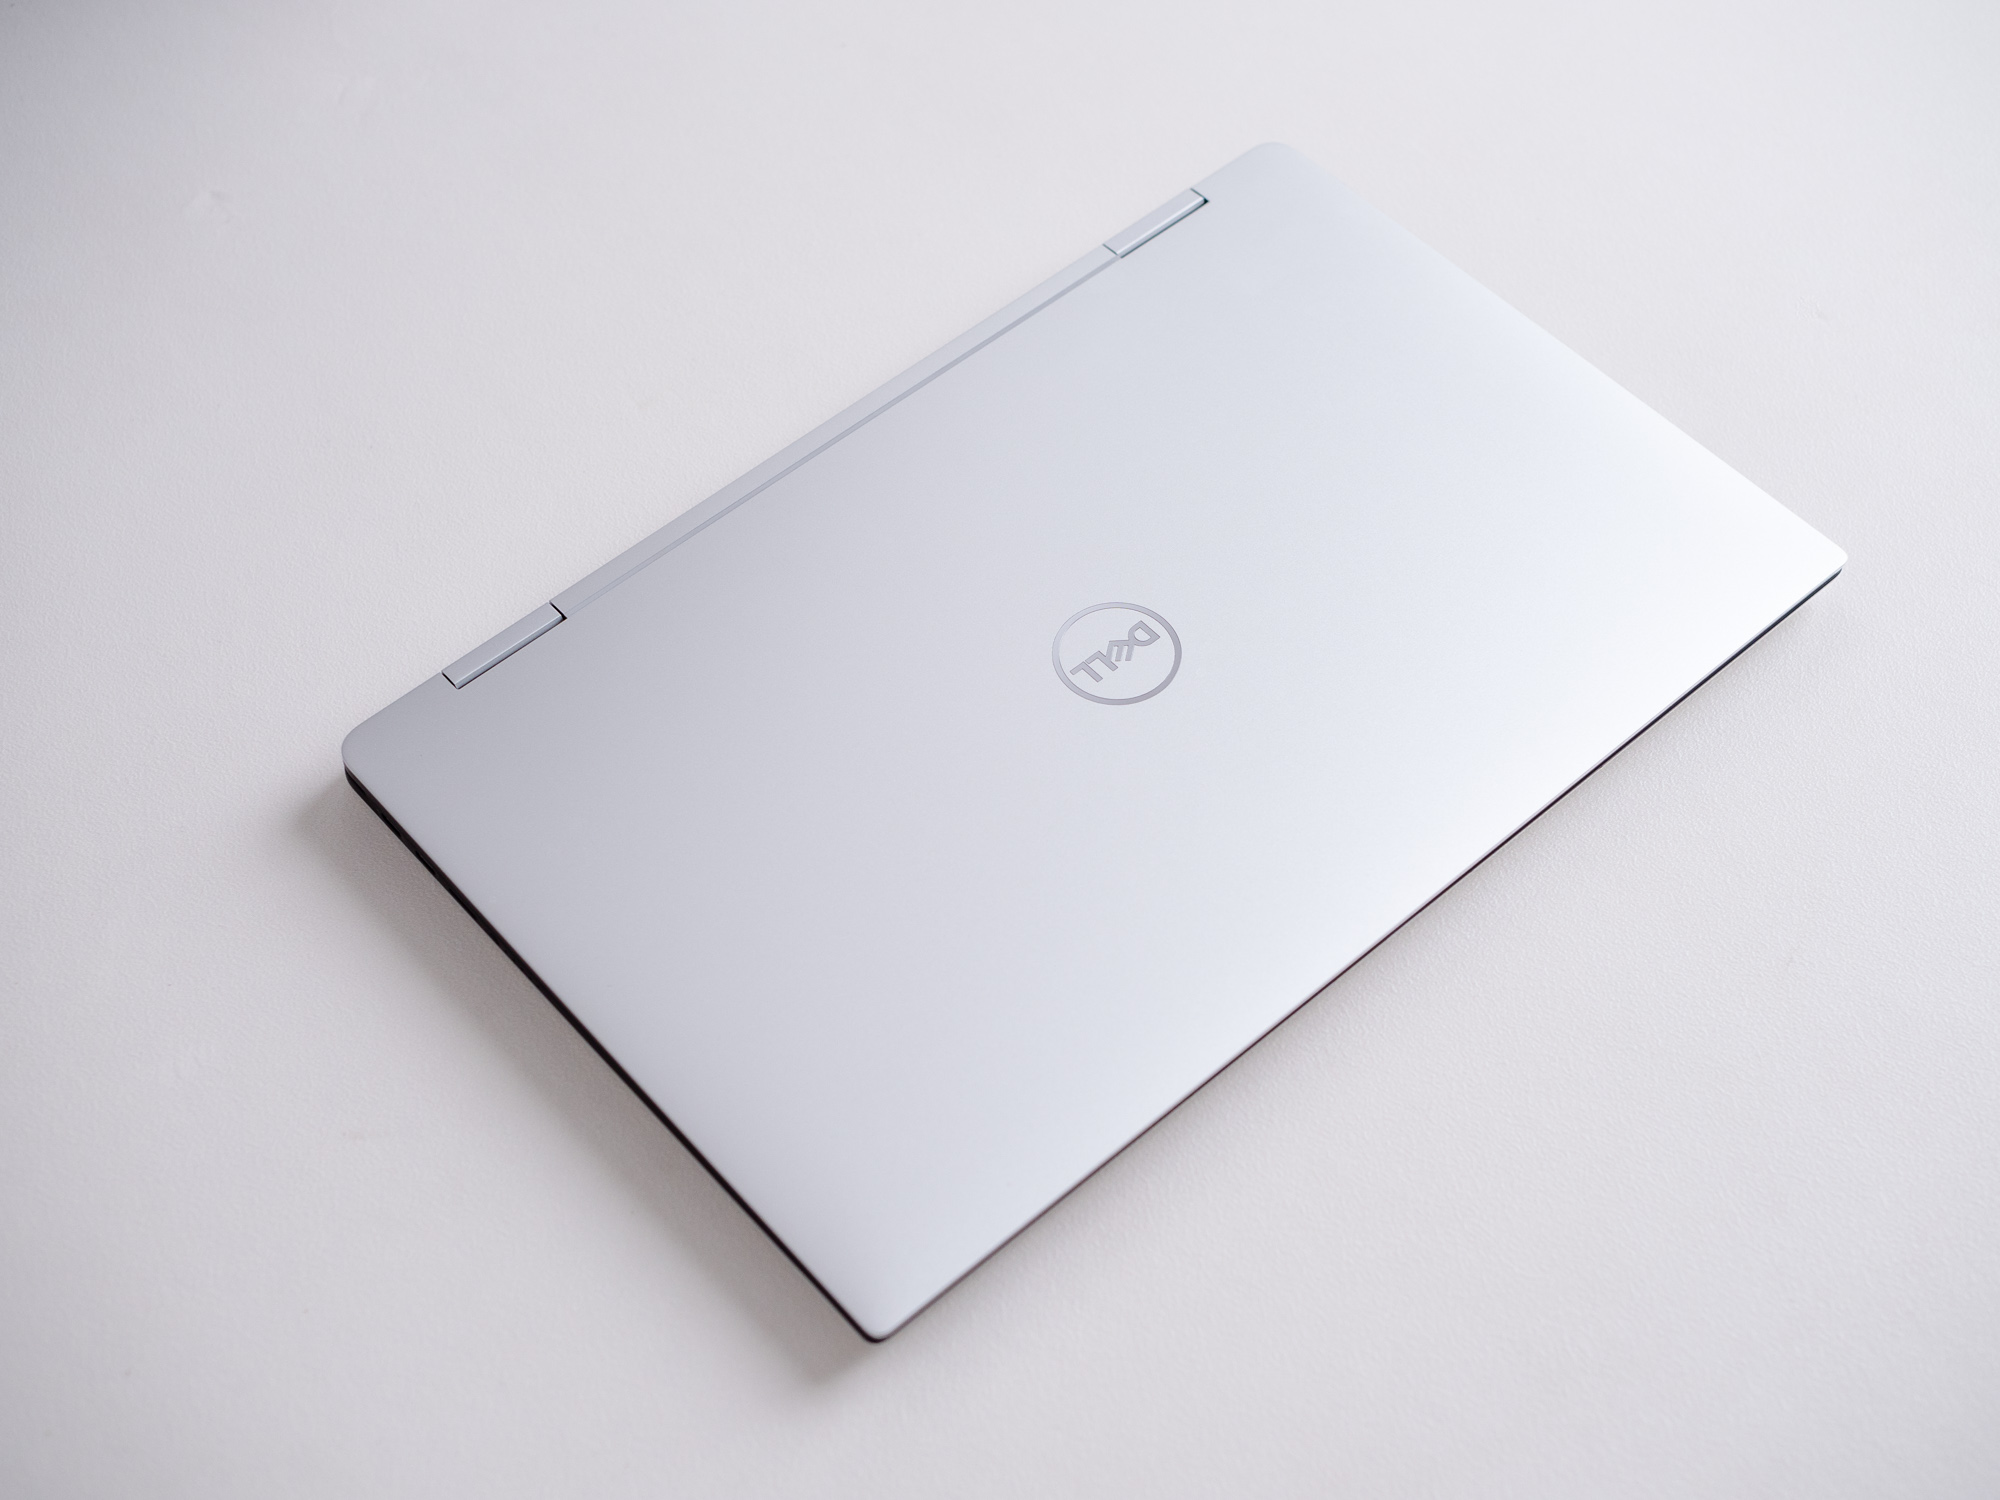 Dell XPS 15 2w1